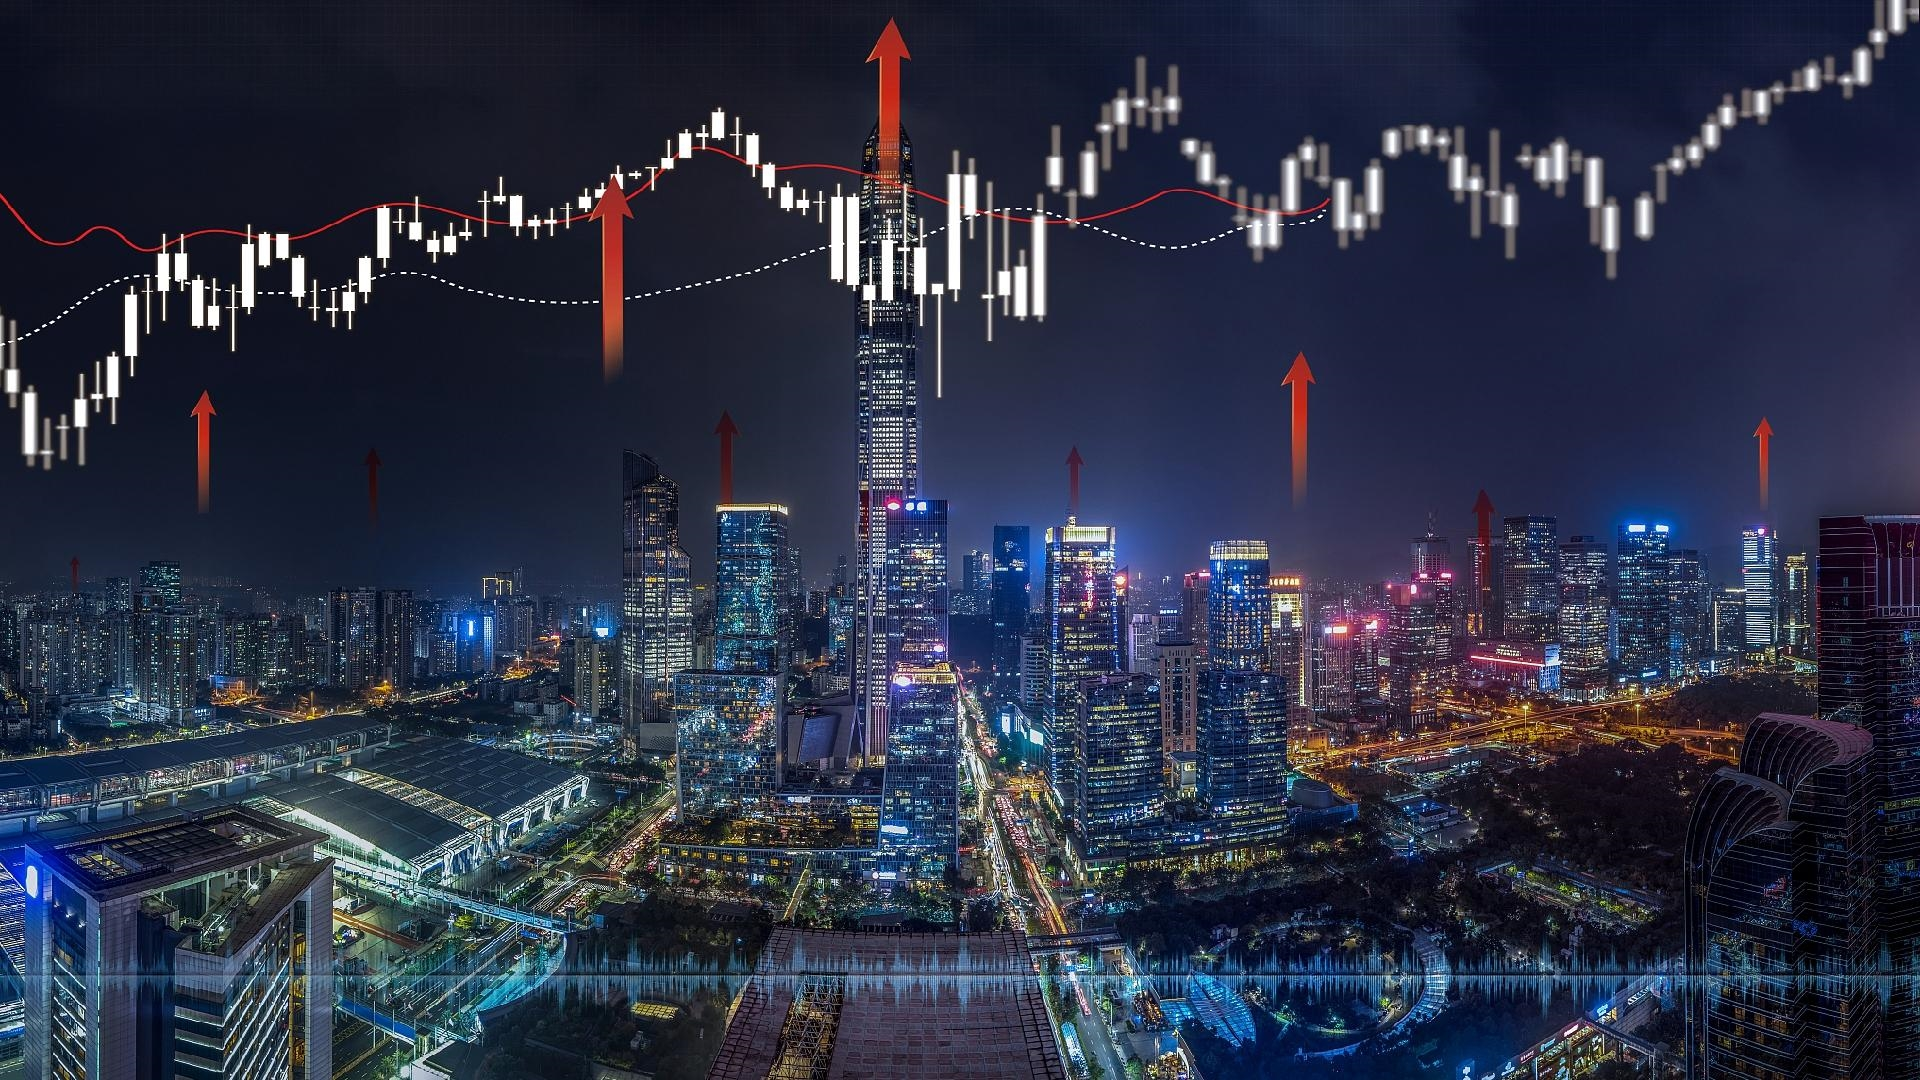 Calls for sustainable economic recovery at Intl Finance Forum 2021